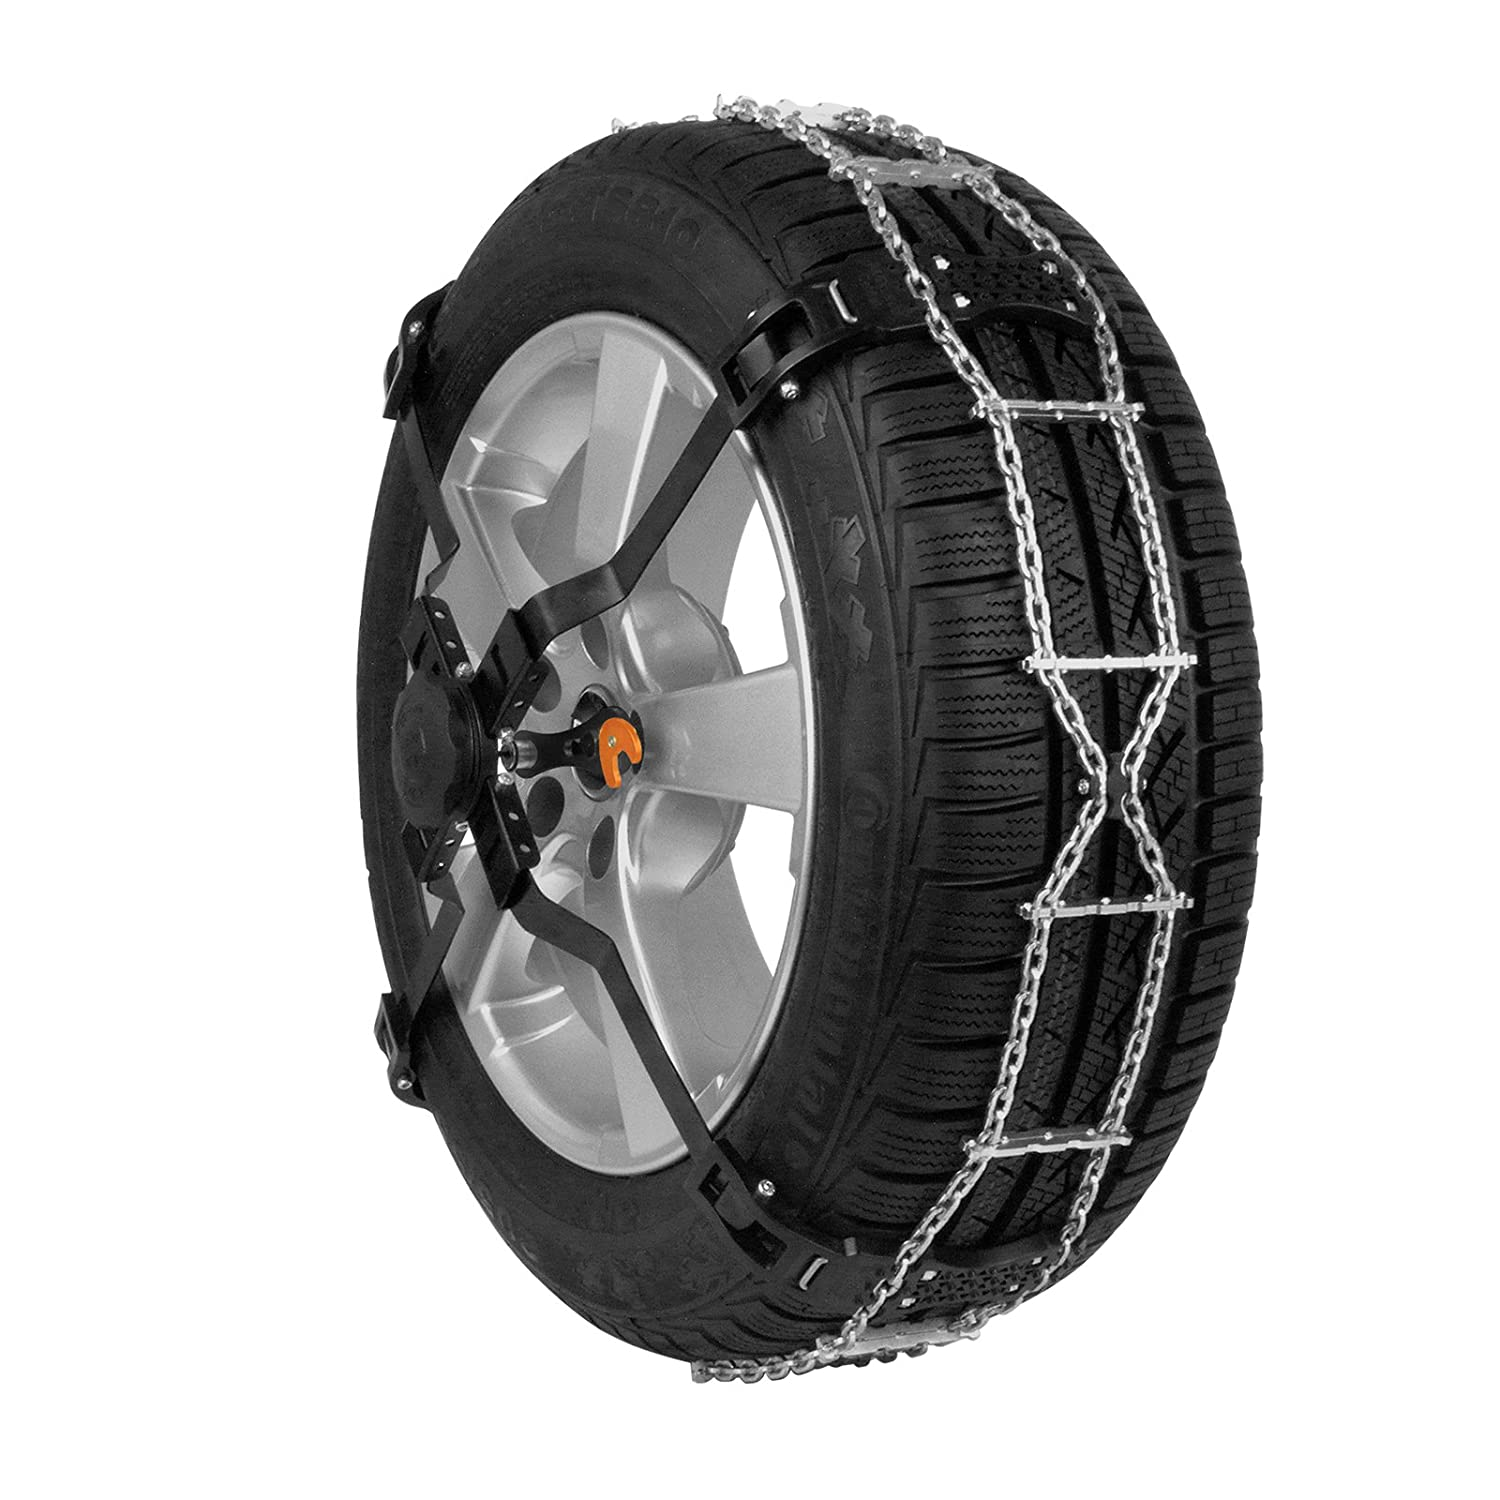 RUD 4716735 Snow Chains Centrax Comfort Mounting N894 Set of 2